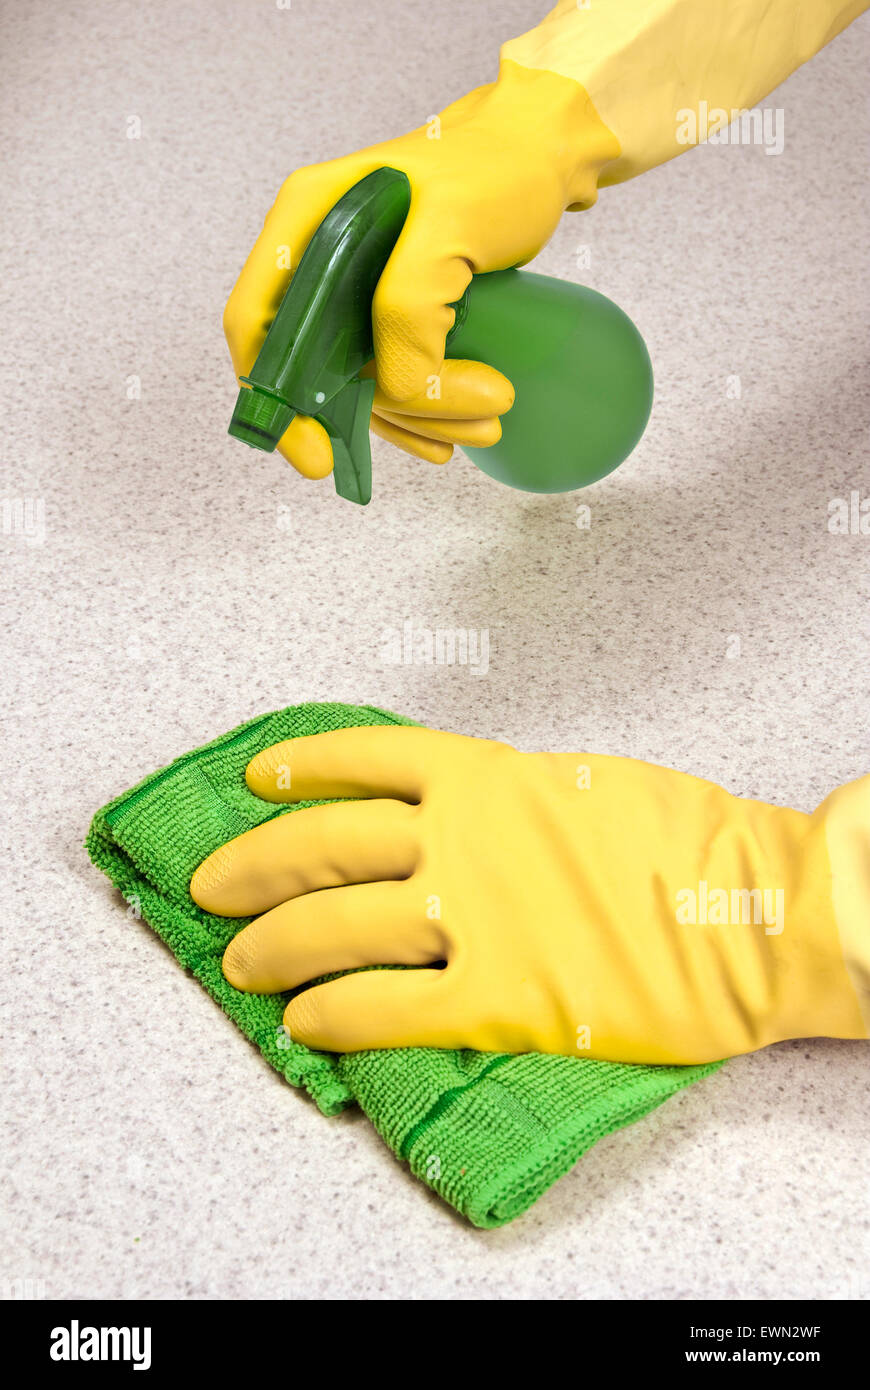 Hands wearing rubber gloves cleaning counter with rag and spray cleaner. - Stock Image